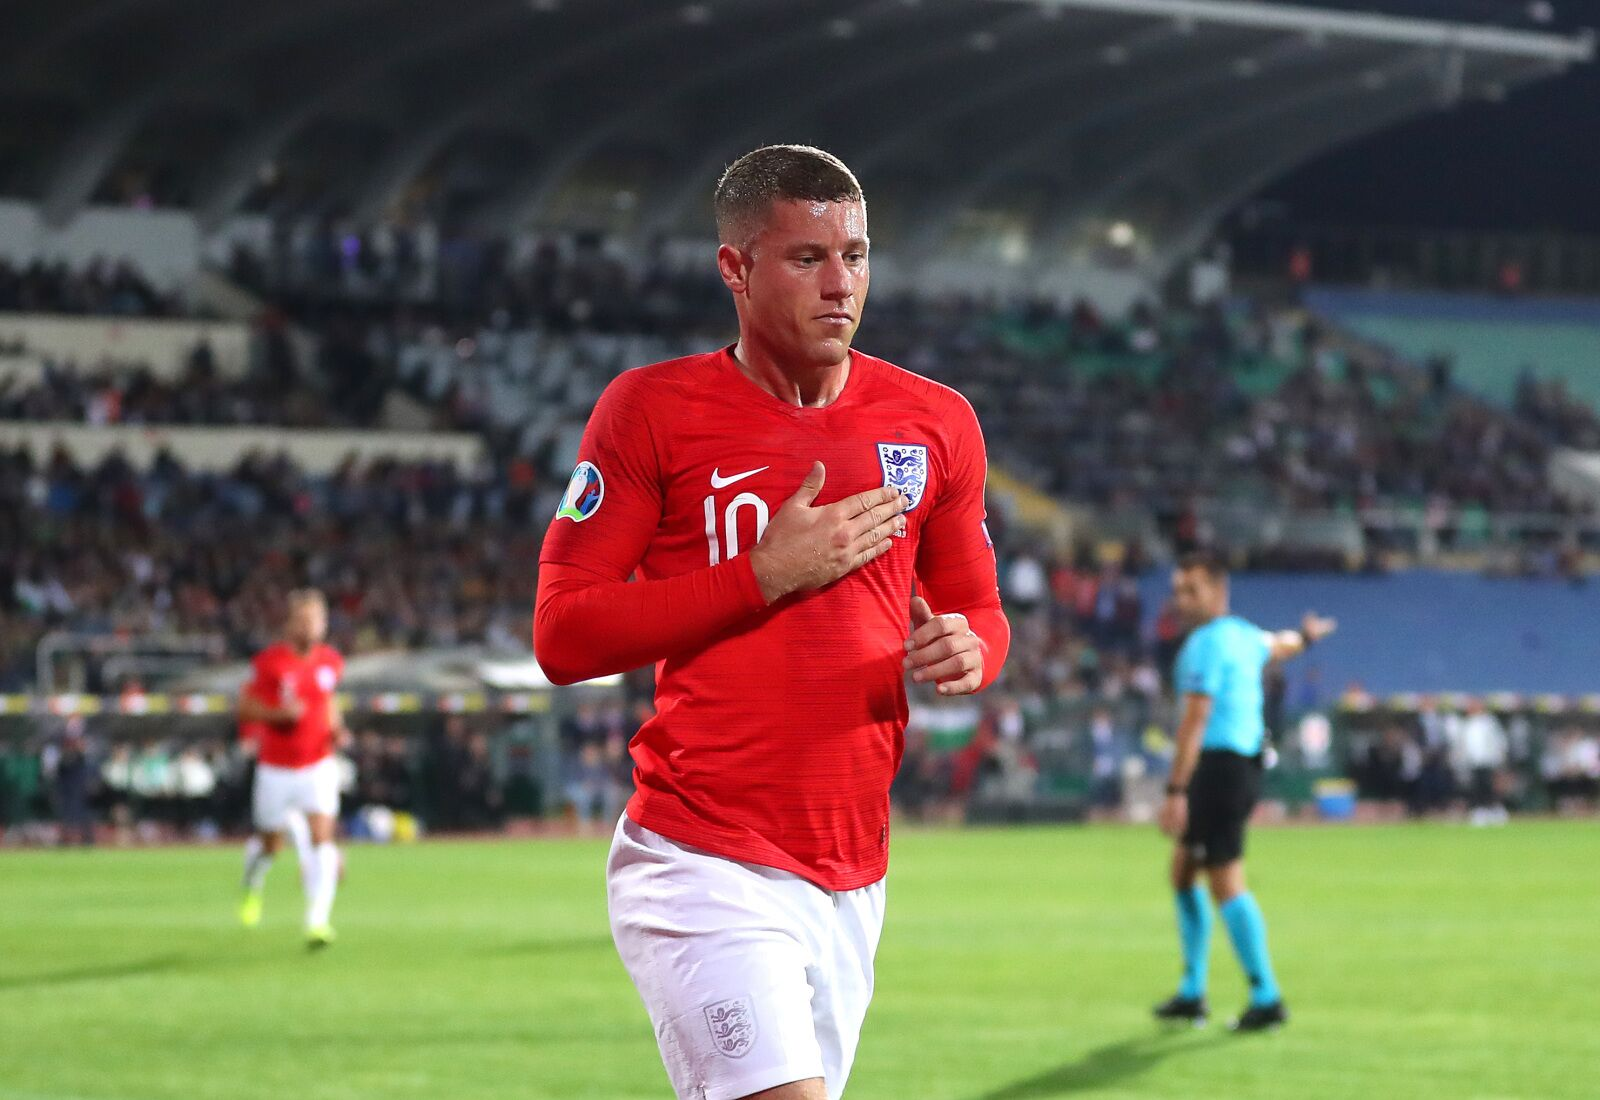 Chelsea: Ross Barkley capitalizes on good formation and poor opponent